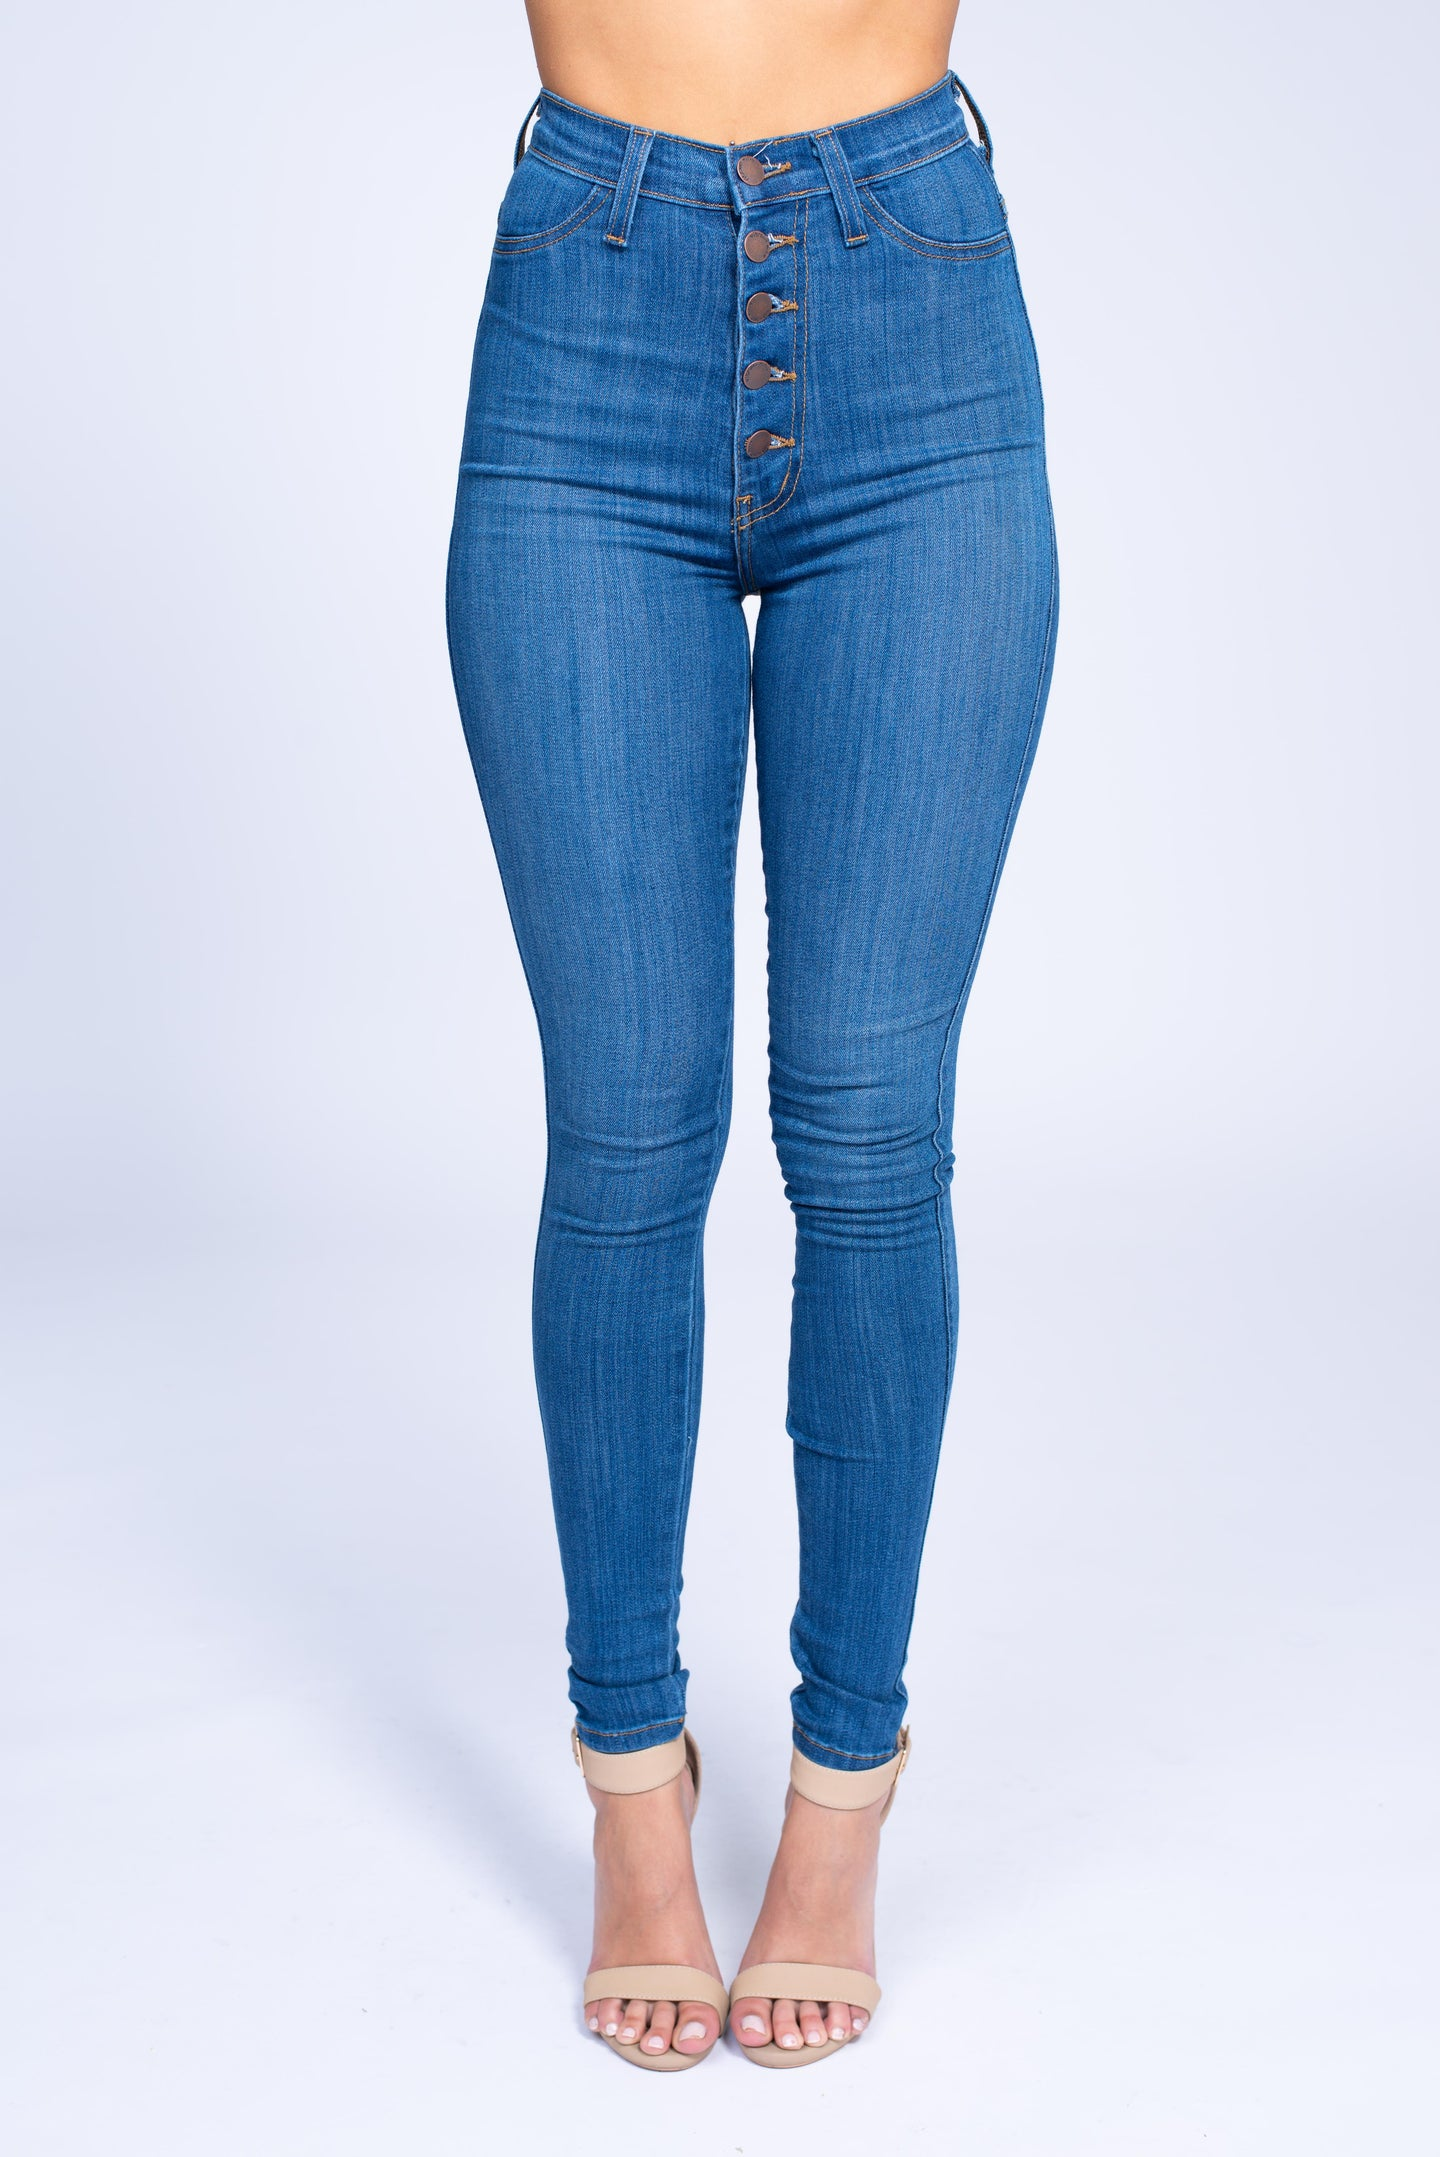 The Sweet Life High Rise Jeans